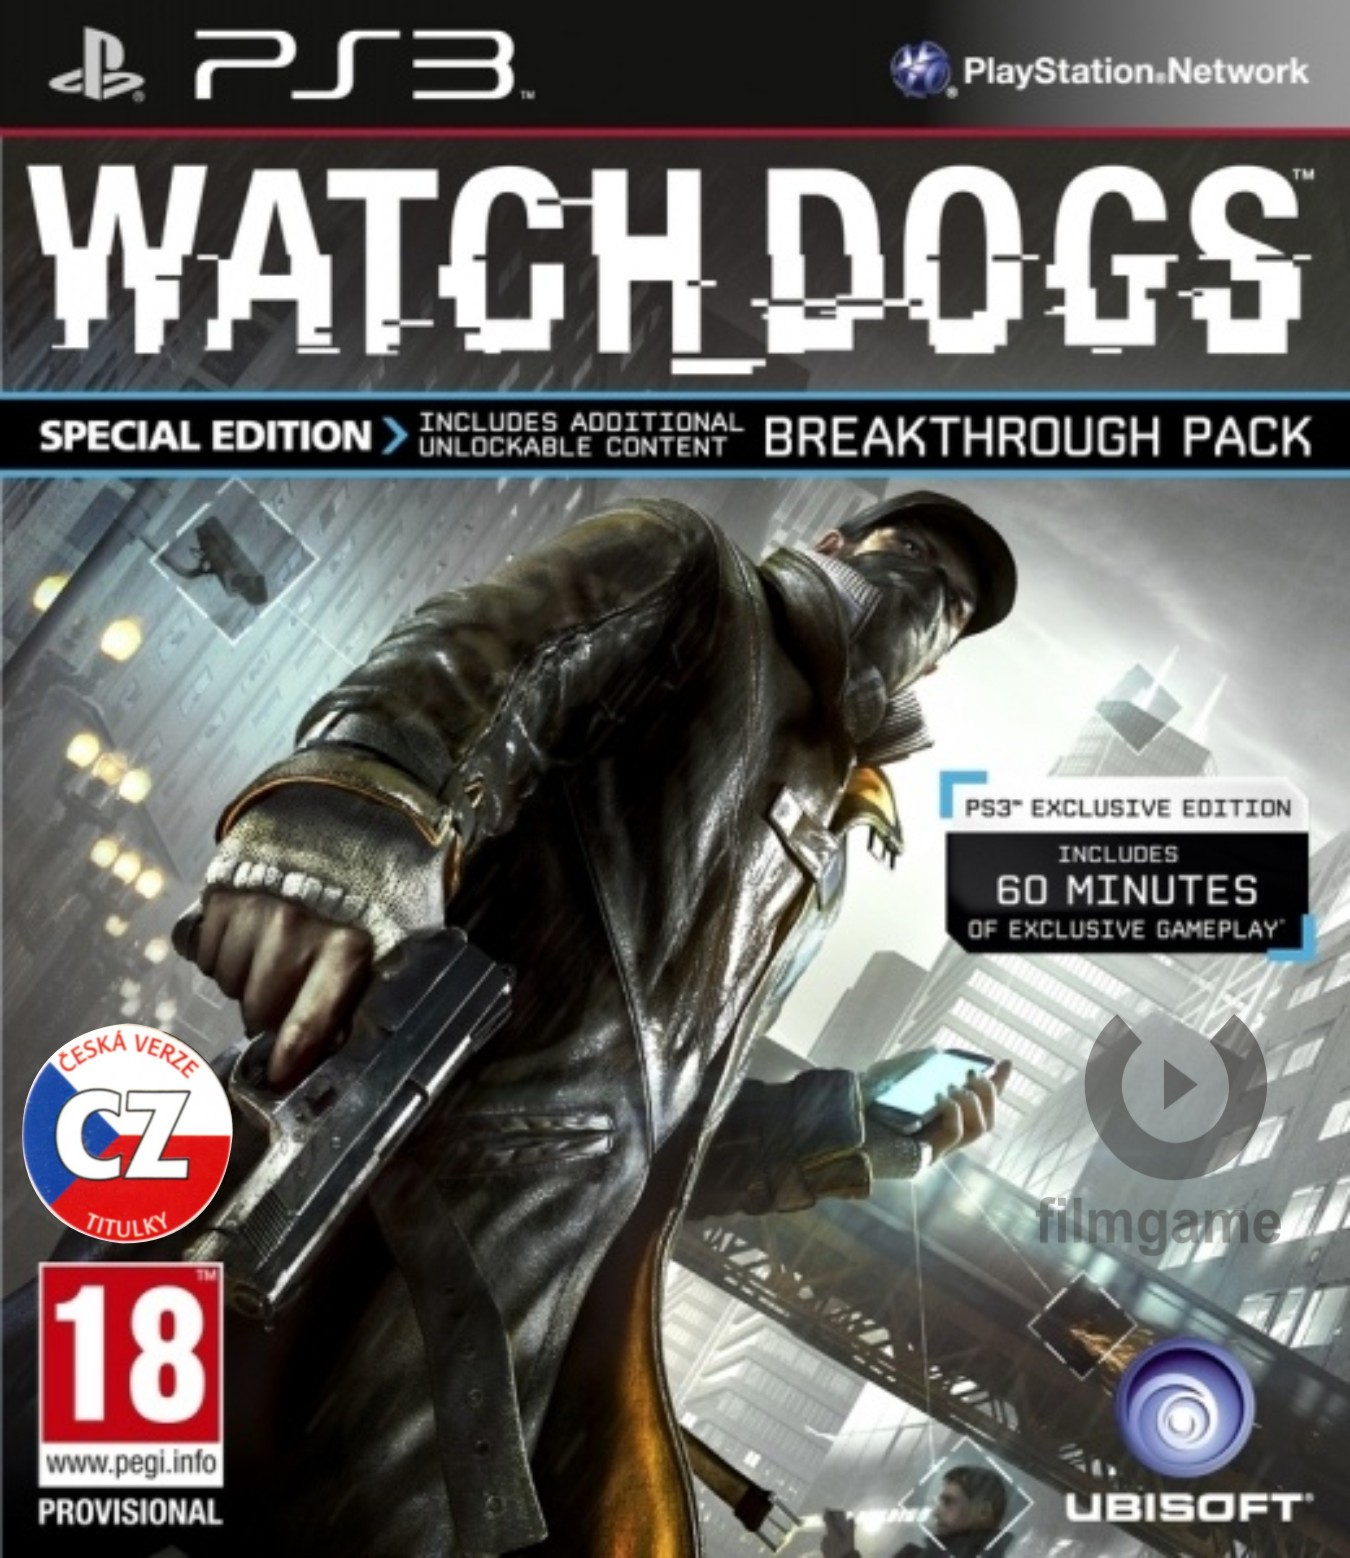 WATCH DOGS SPECIAL EDITION CZ - PS3